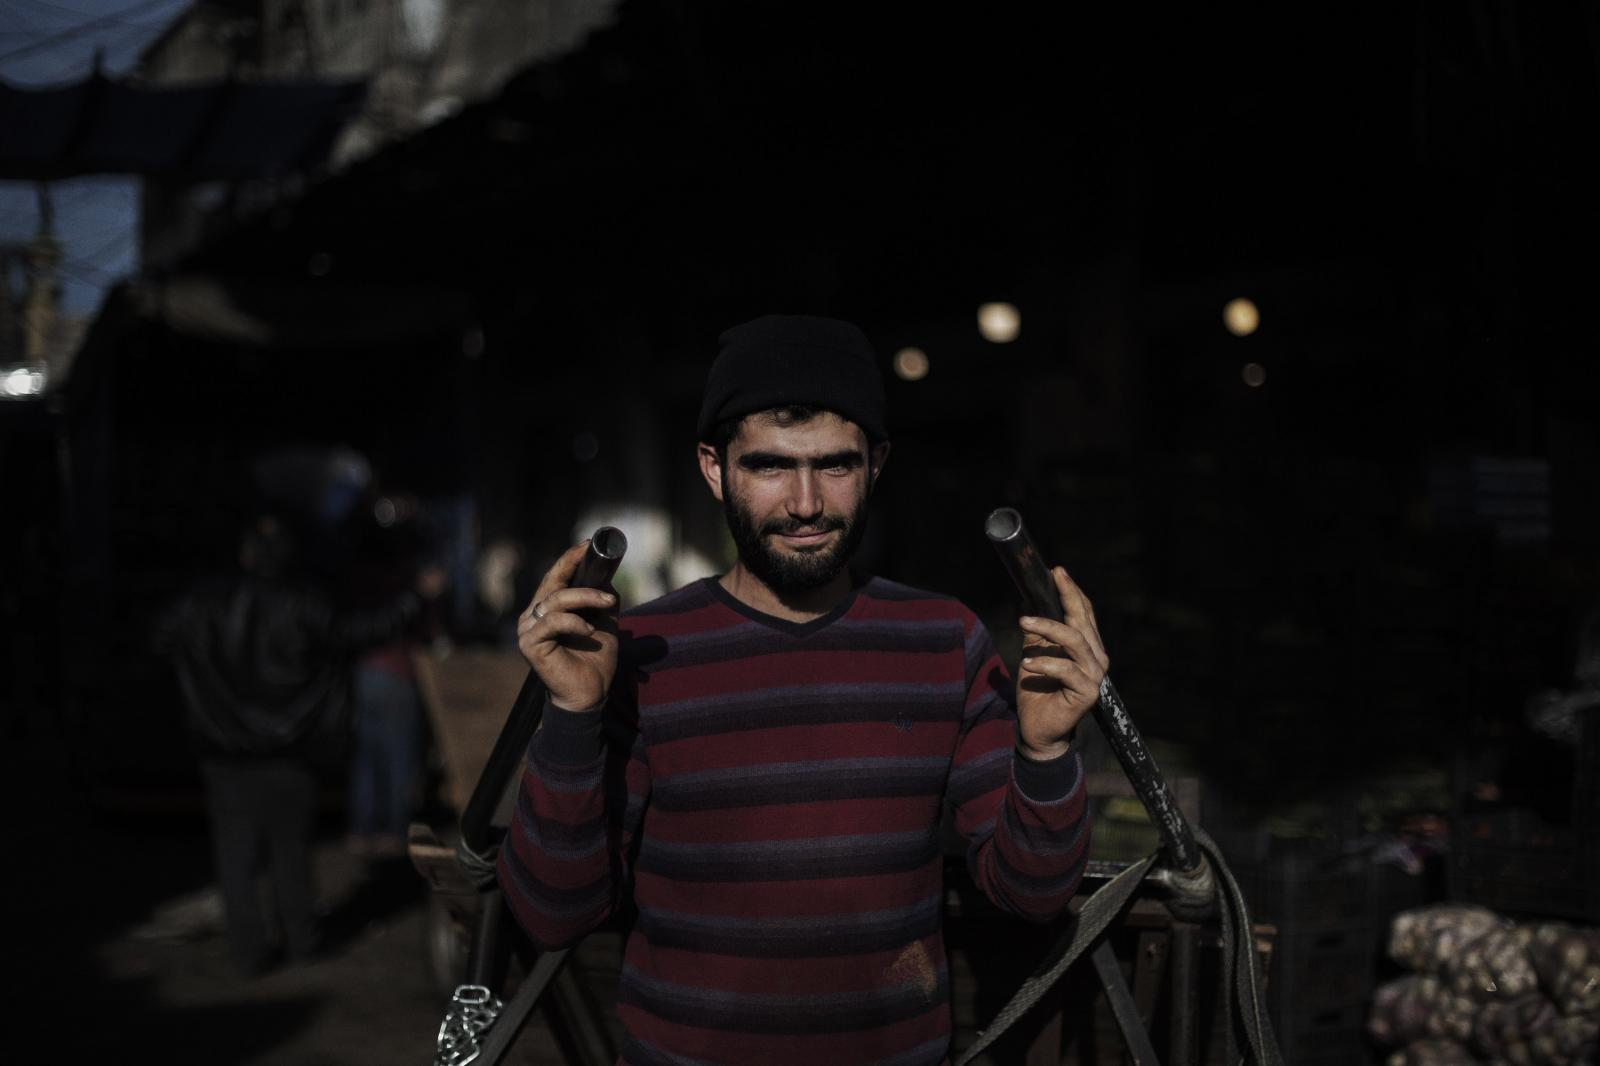 """Mahmoud Hussein, 18 years old from Idlib, Syria. """"I moved from one problem to another problem. It's better back home. At least it's home. . Bab al-Tabbaneh, Tripoli. Lebanon. December 11th, 2019. Diego Ibarra Sánchez for CNN"""